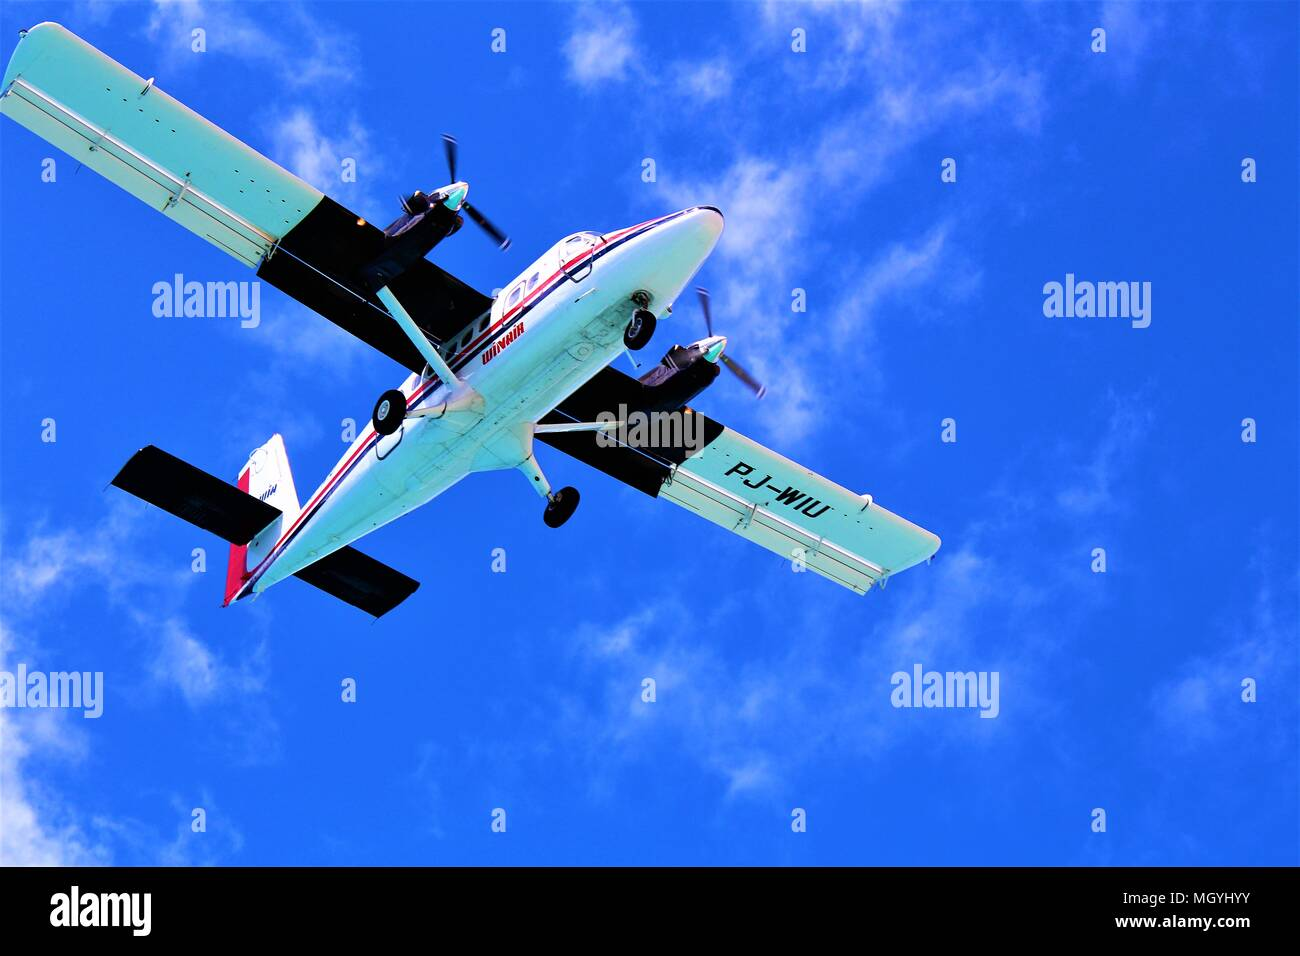 MAHO, ST MAARTEN - FEBRUARY 27TH 2018: A Winair plane coming in to land at Princess Juliana International Airport. Shot was taken from the beach below - Stock Image